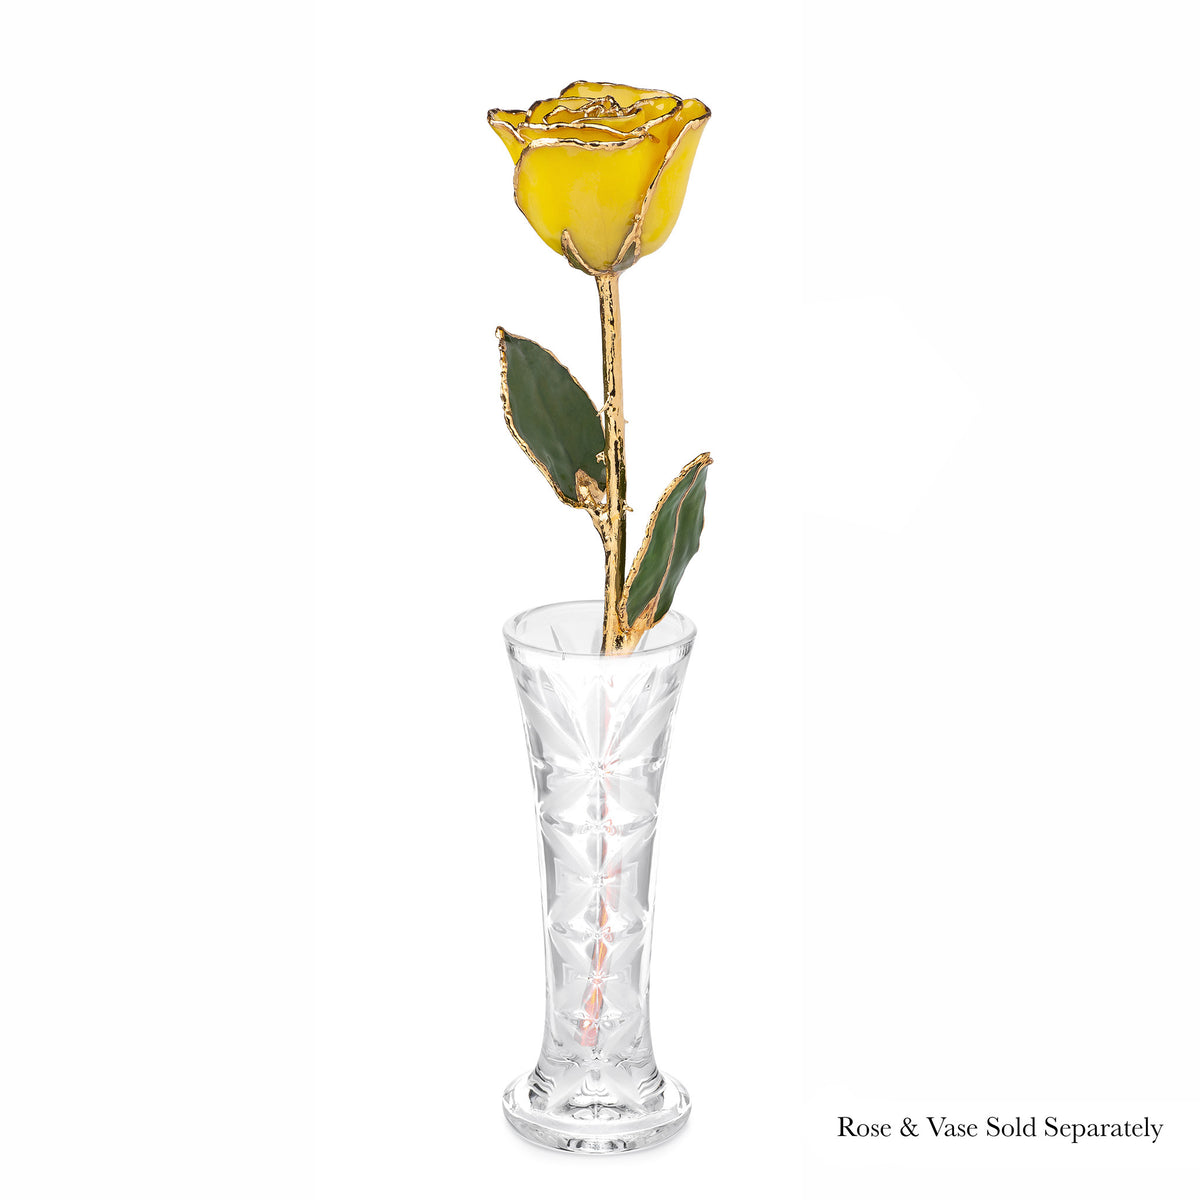 24K Gold Forever Rose - Yellow